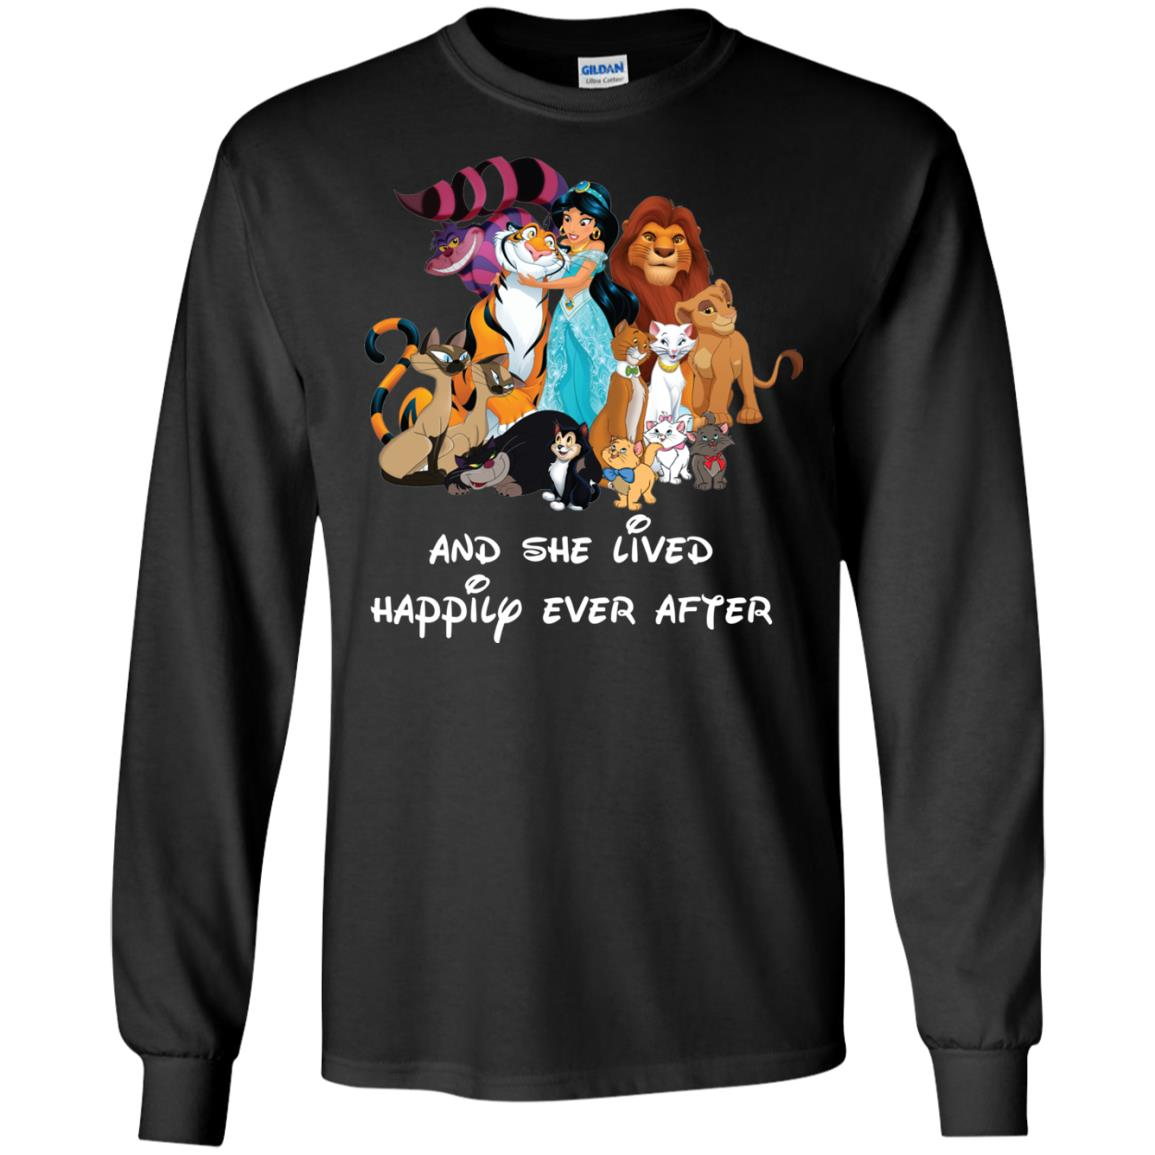 image 52px Disney shirt: And she lived happily ever after t shirt